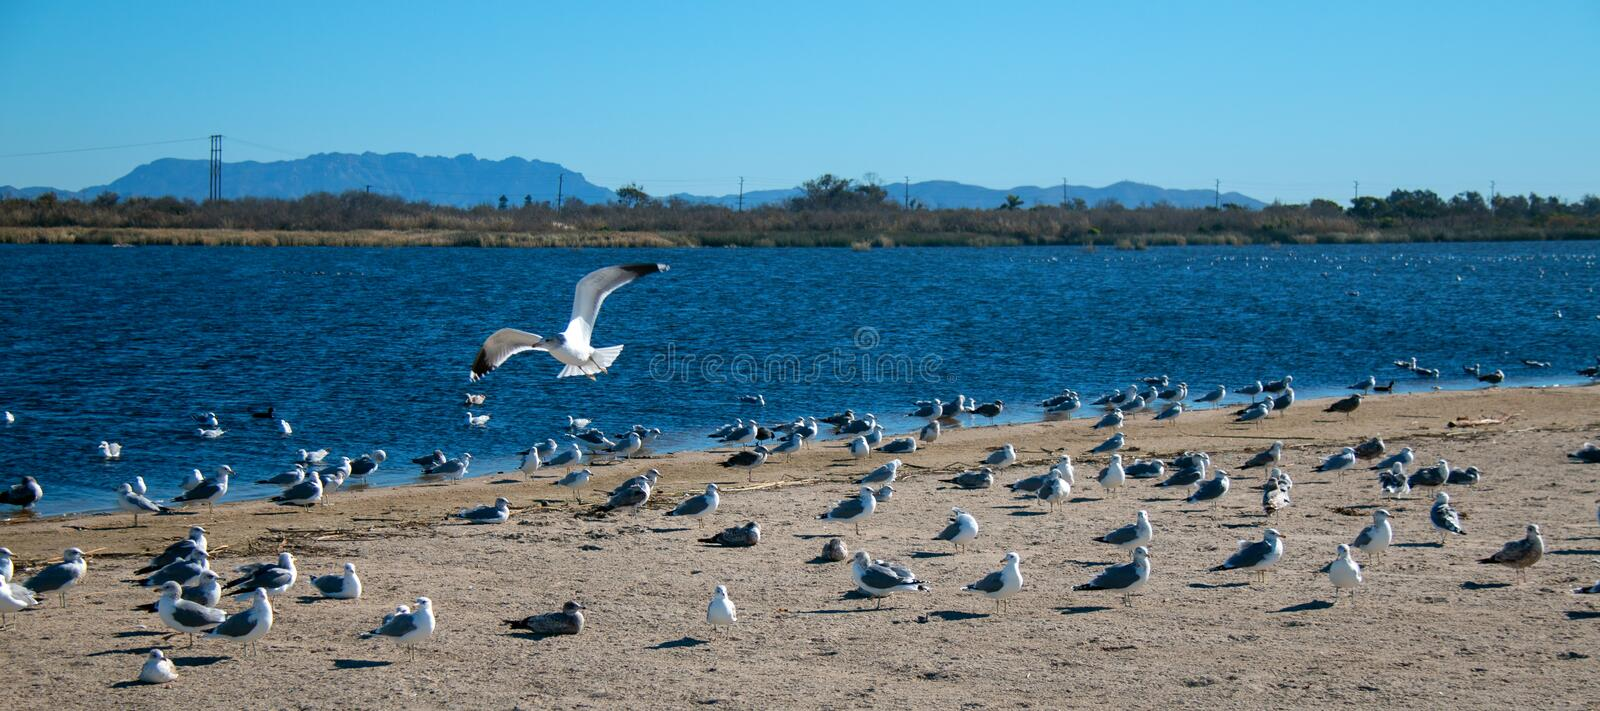 Lone Seagull flying over flock of seagulls [Laridae] at McGrath state park Santa Clara river mouth marsh at Ventura California USA. Lone Seagull flying over stock image